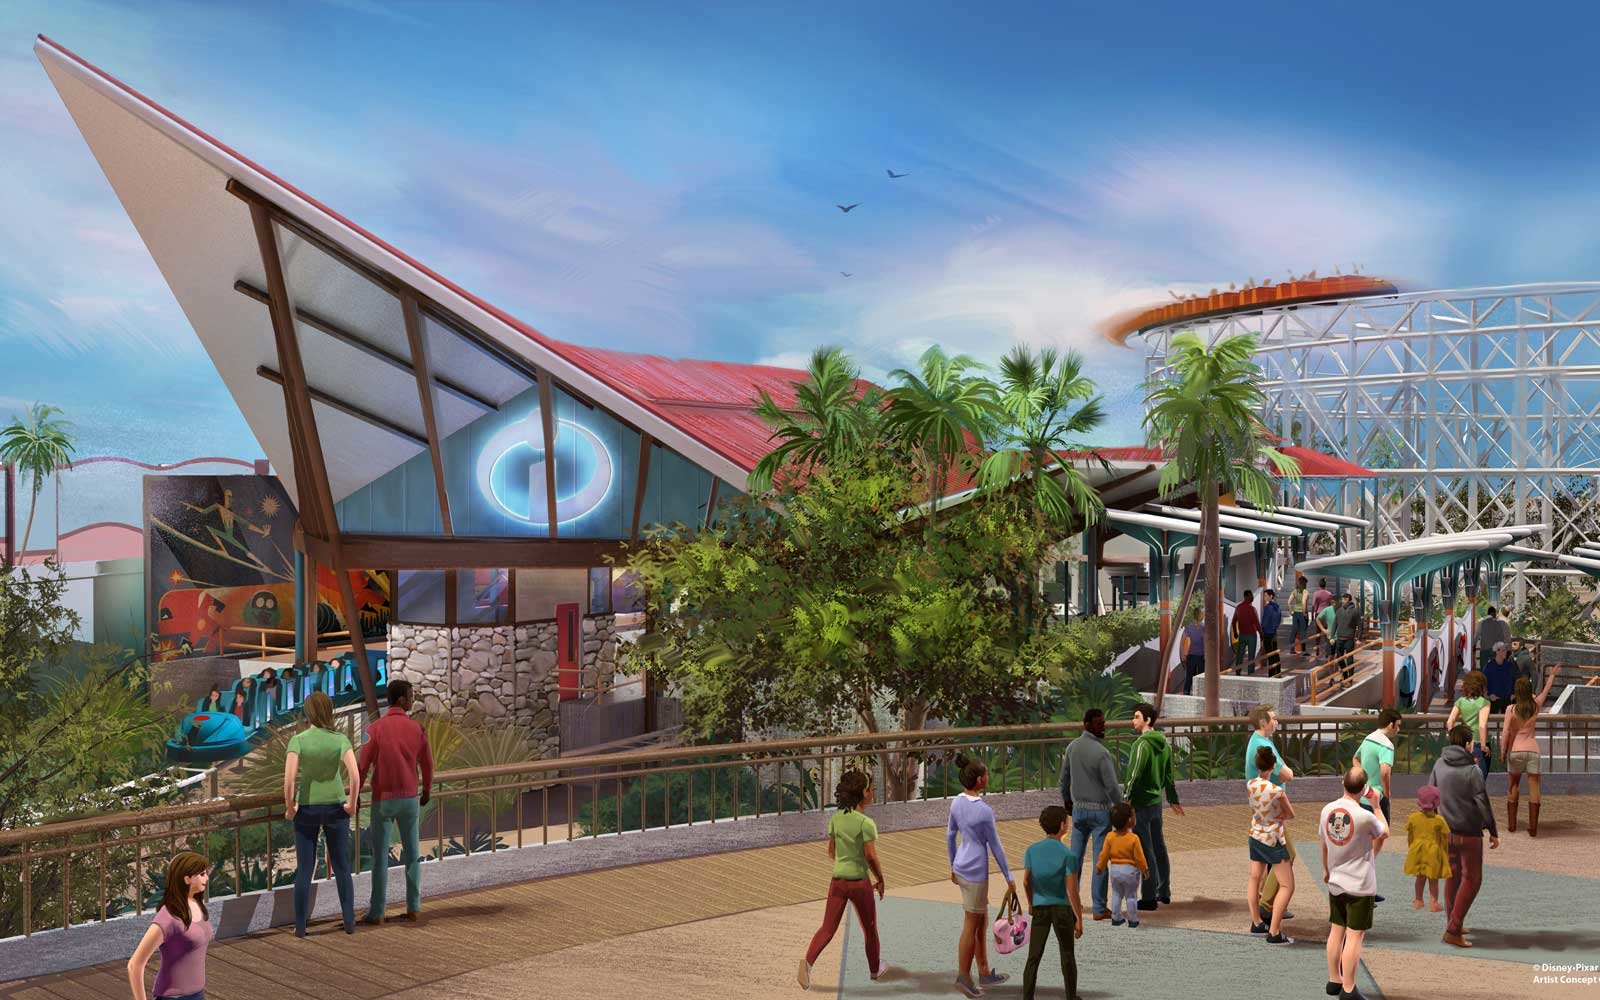 Incredibles themed roller coaster coming to Disney in 2018